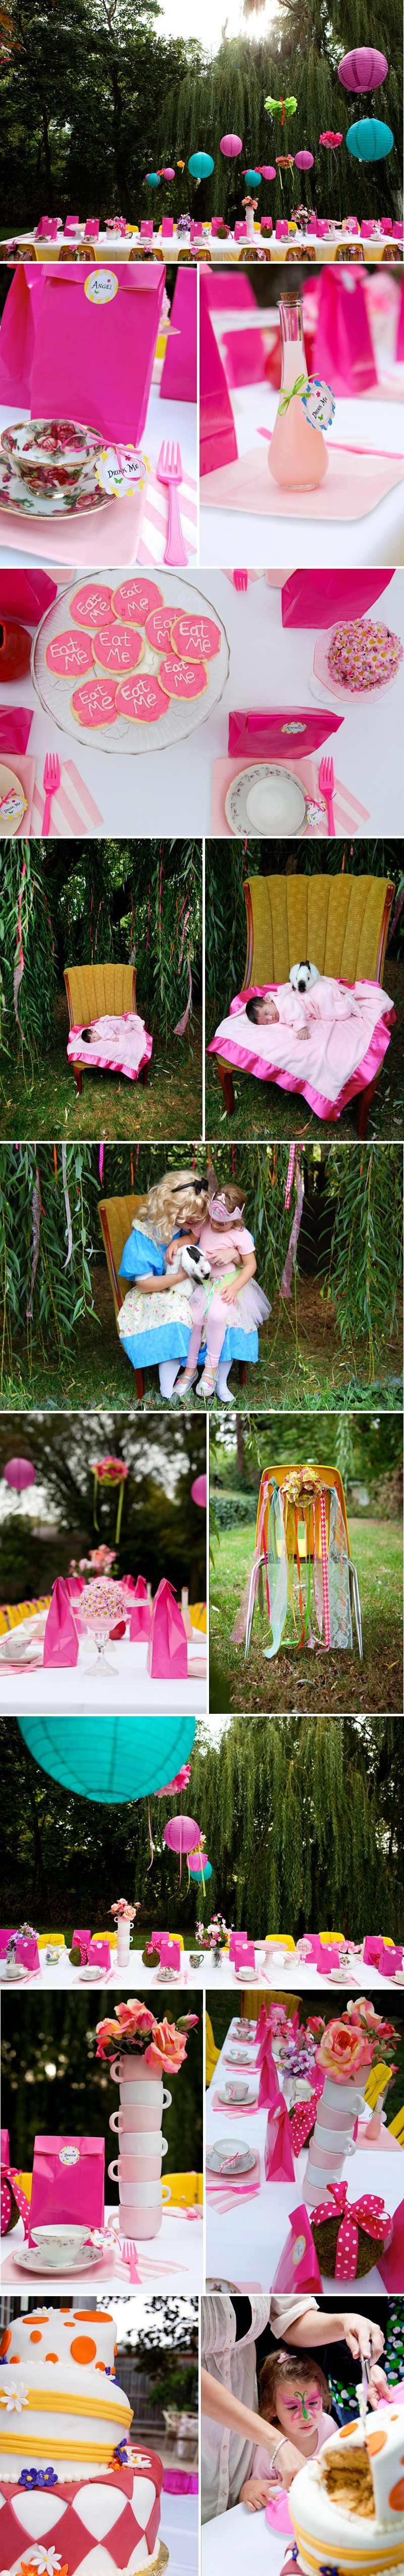 A whimsical Alice in Wonderland Birthday Party with bunny's, sweets and more. Click for free printables and downloads.